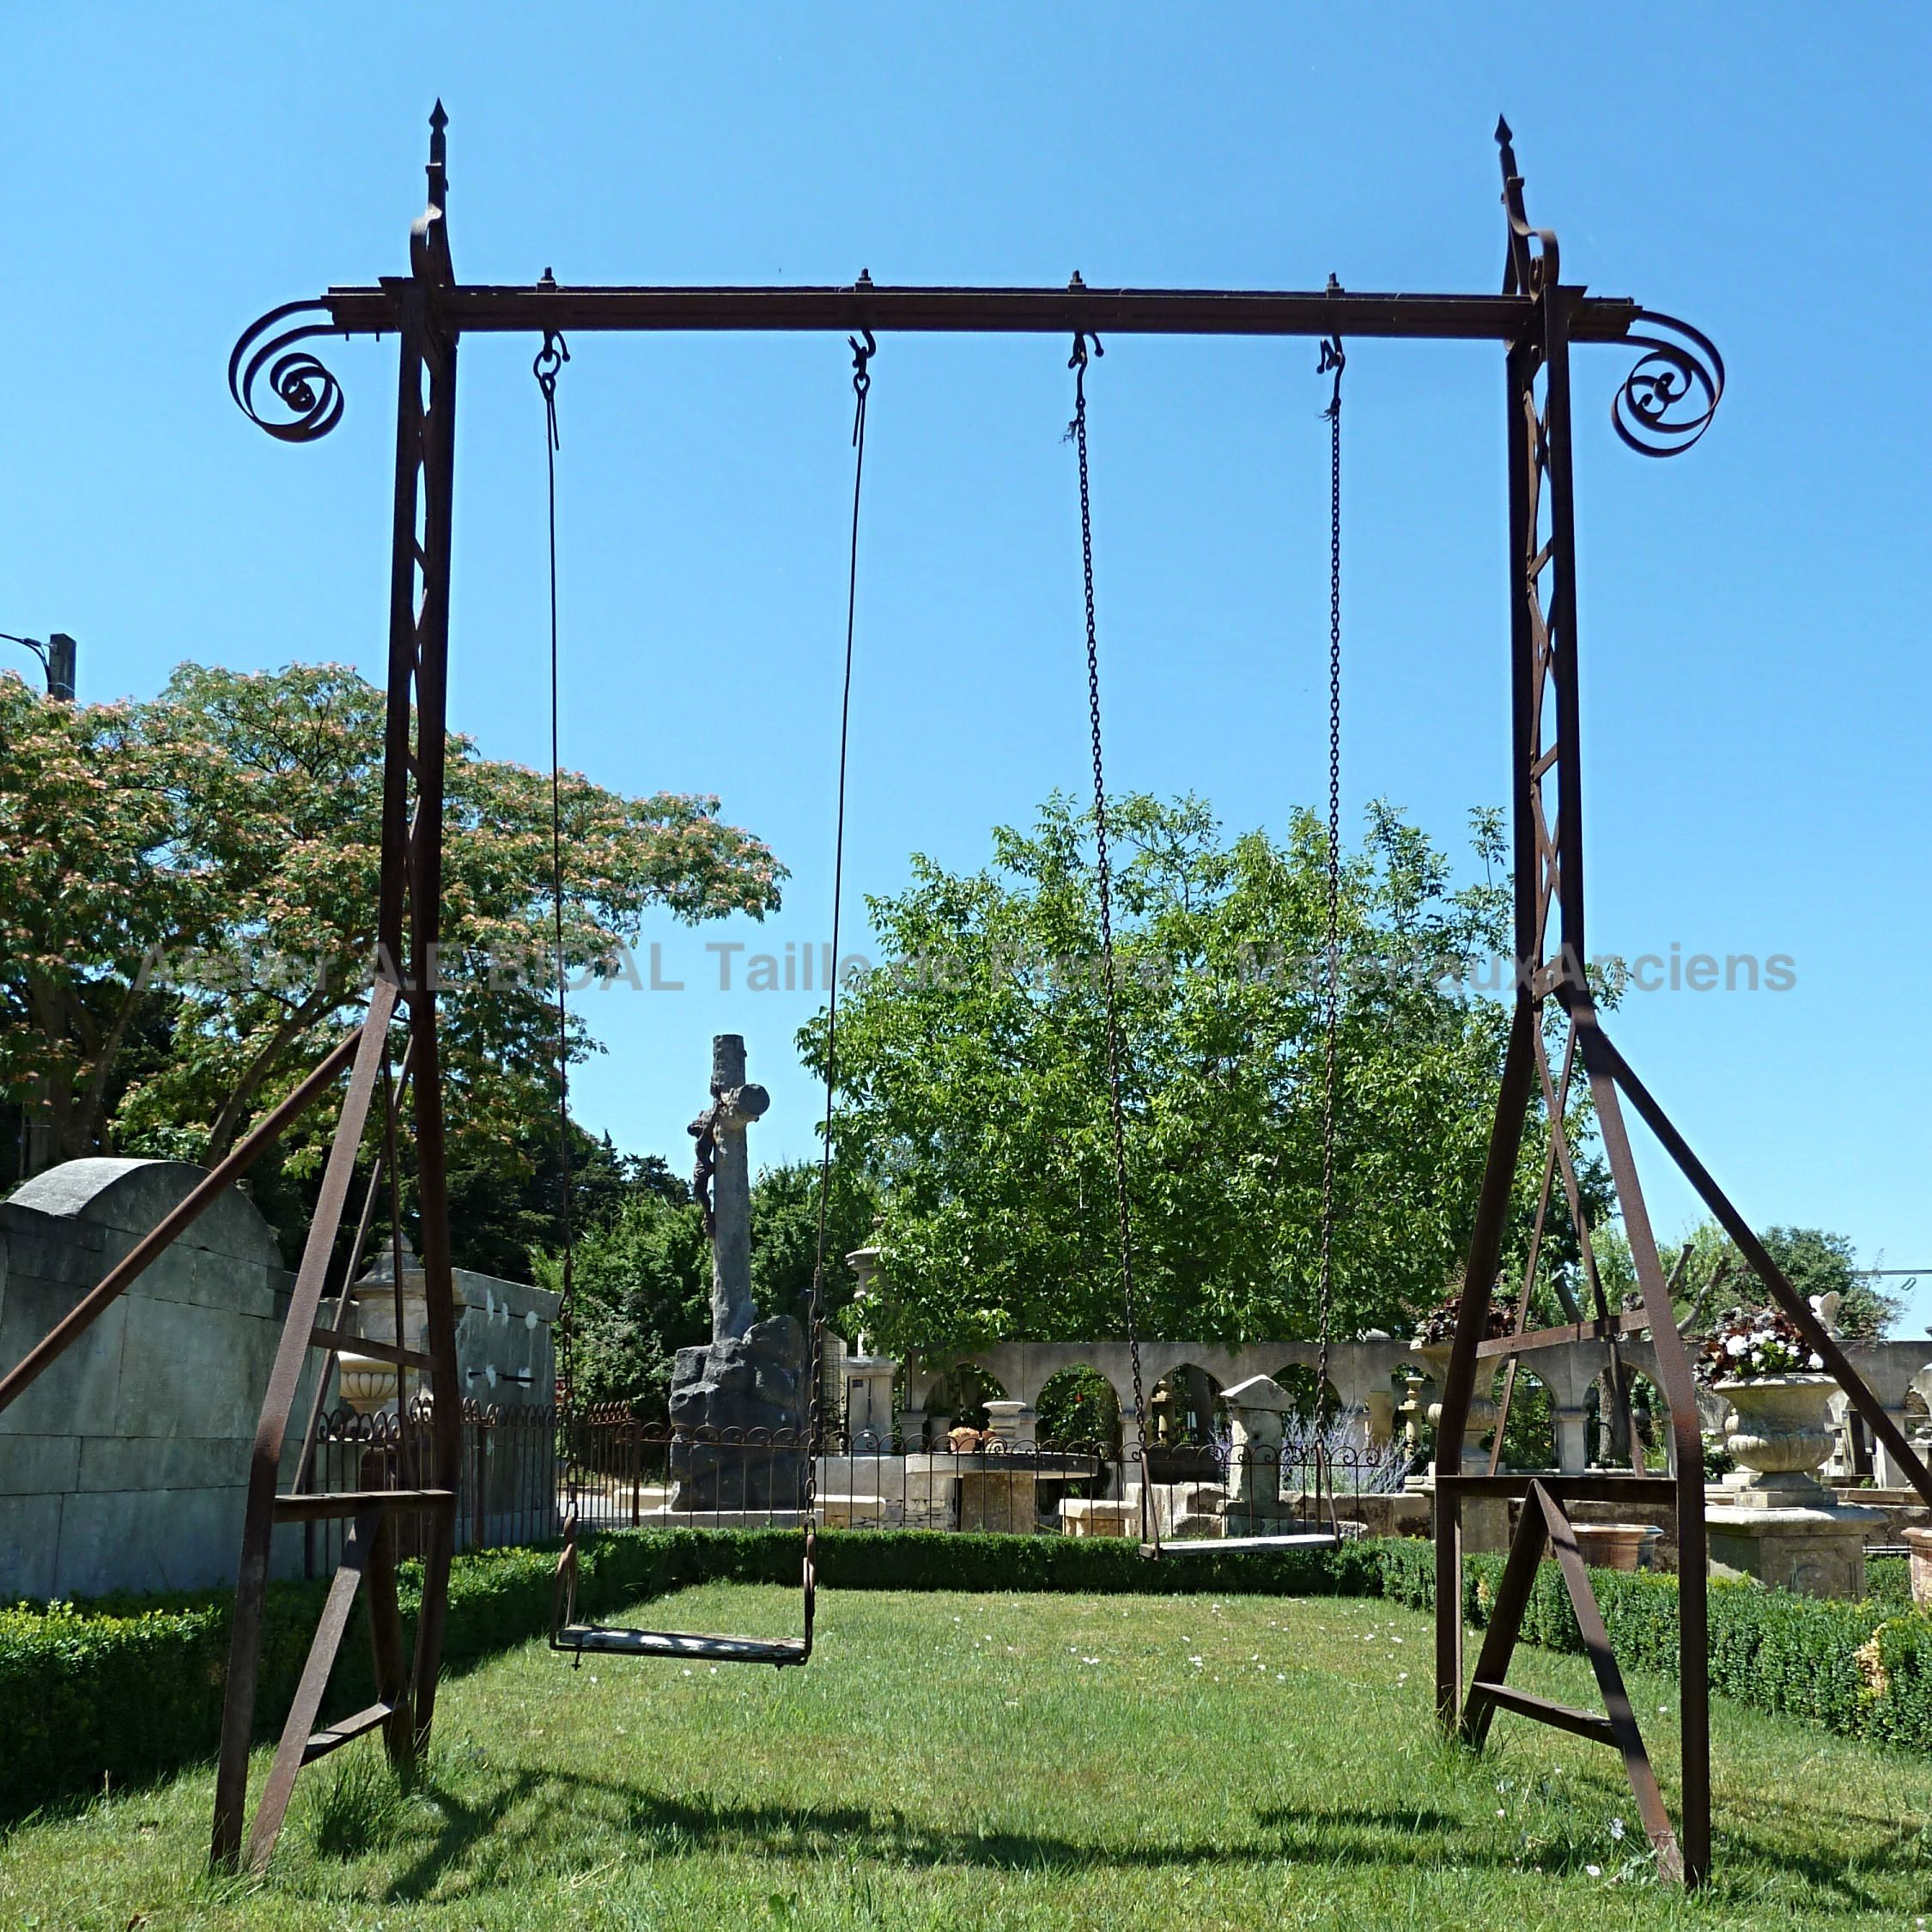 Wrought iron swing - garden games made of old materials.